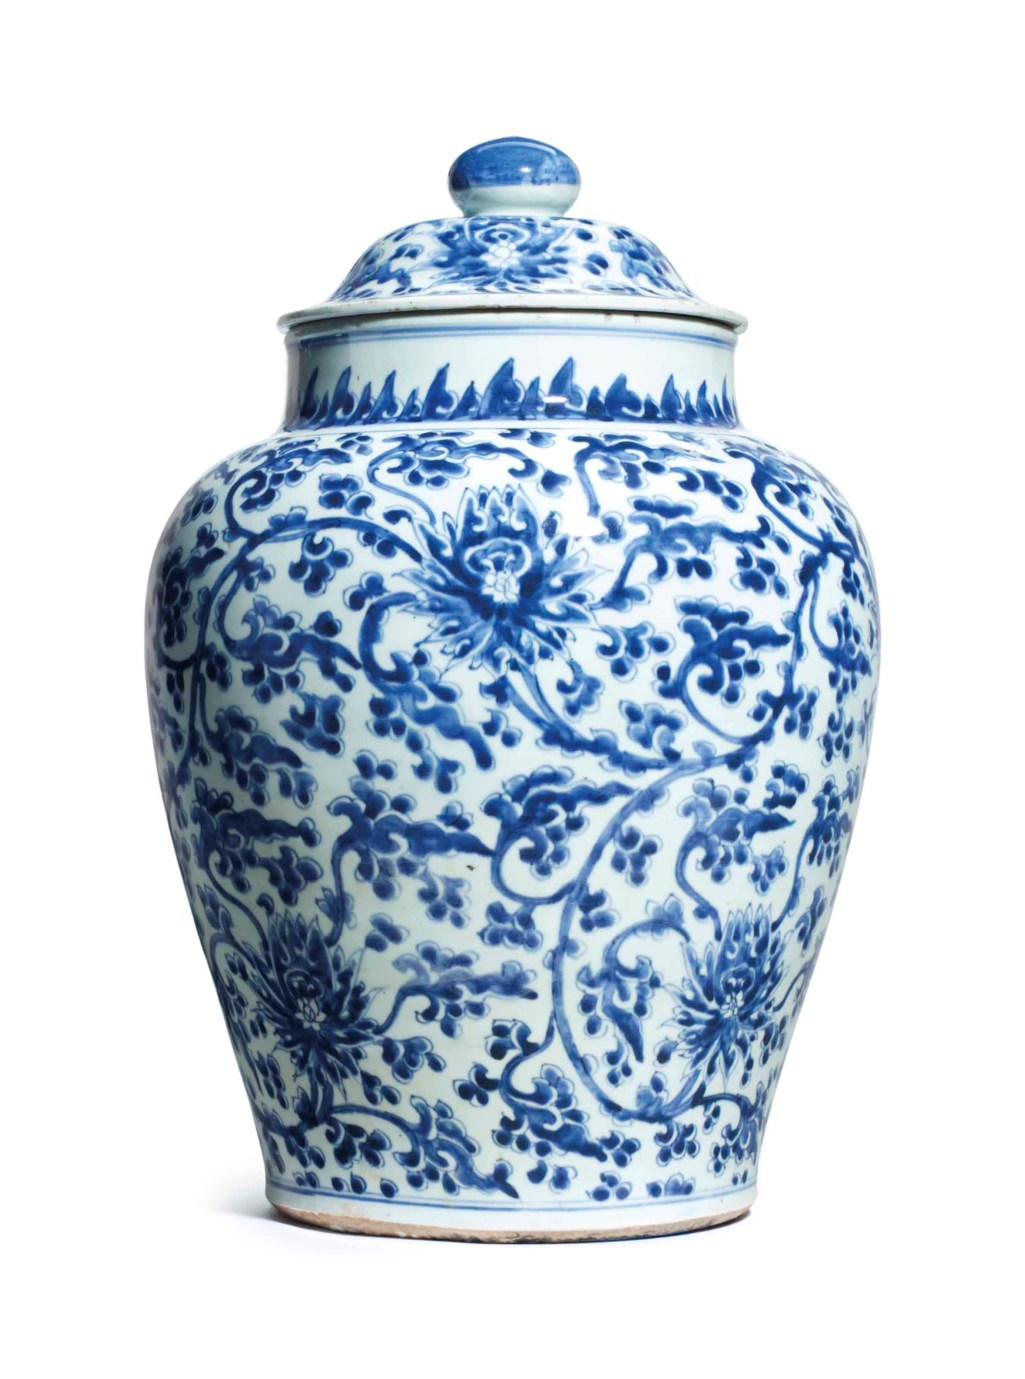 A CHINESE BLUE AND WHITE 'LOTUS' JAR AND A COVER